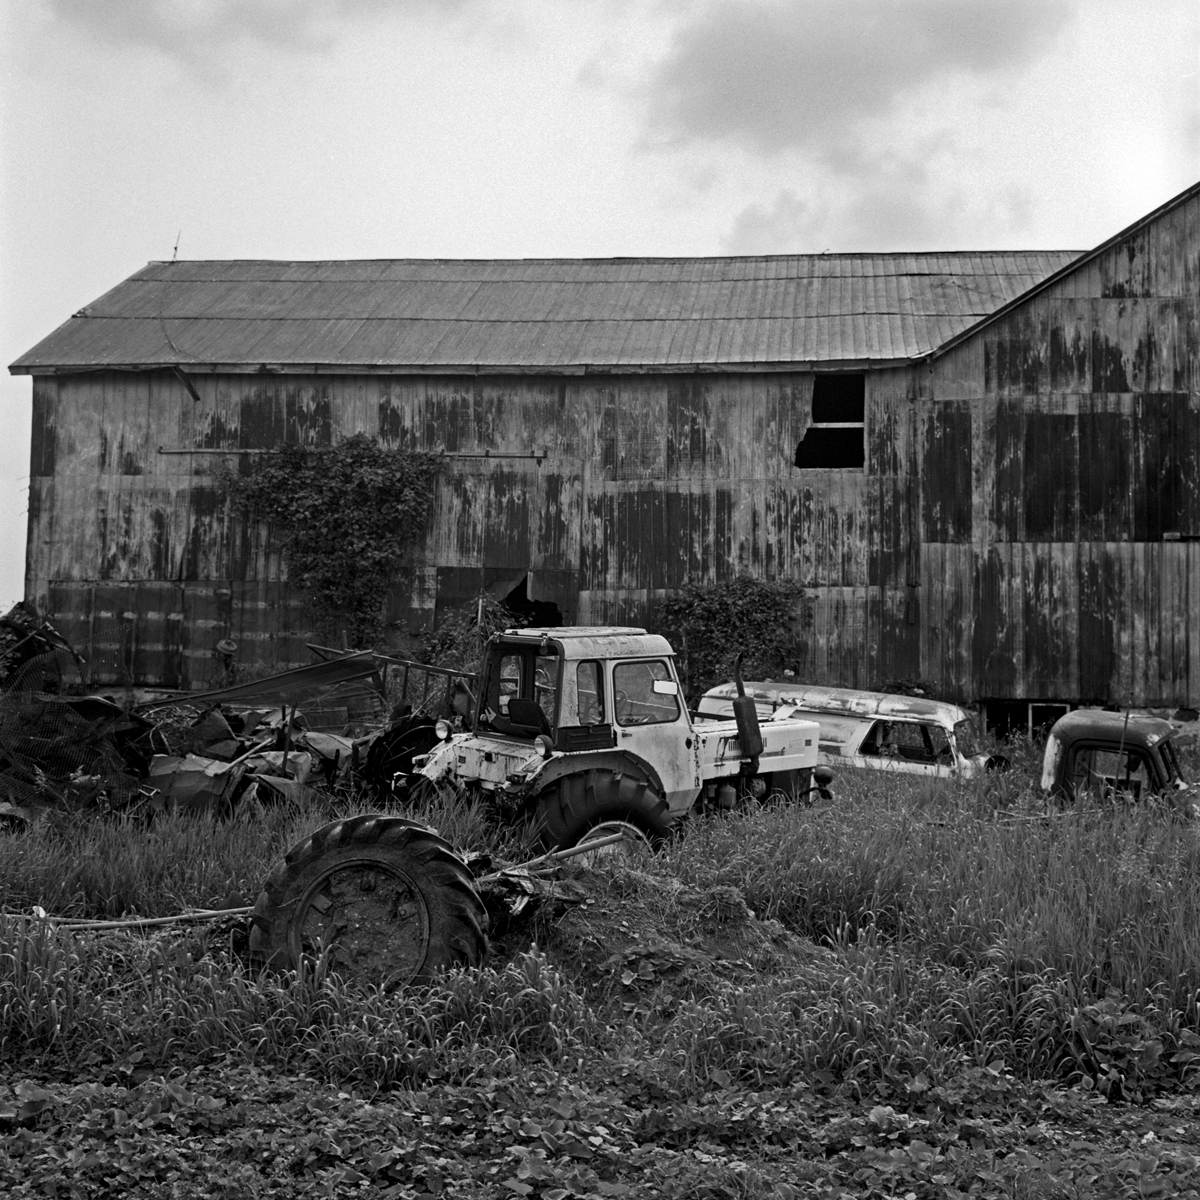 tires-and-dirt-and-a-barn